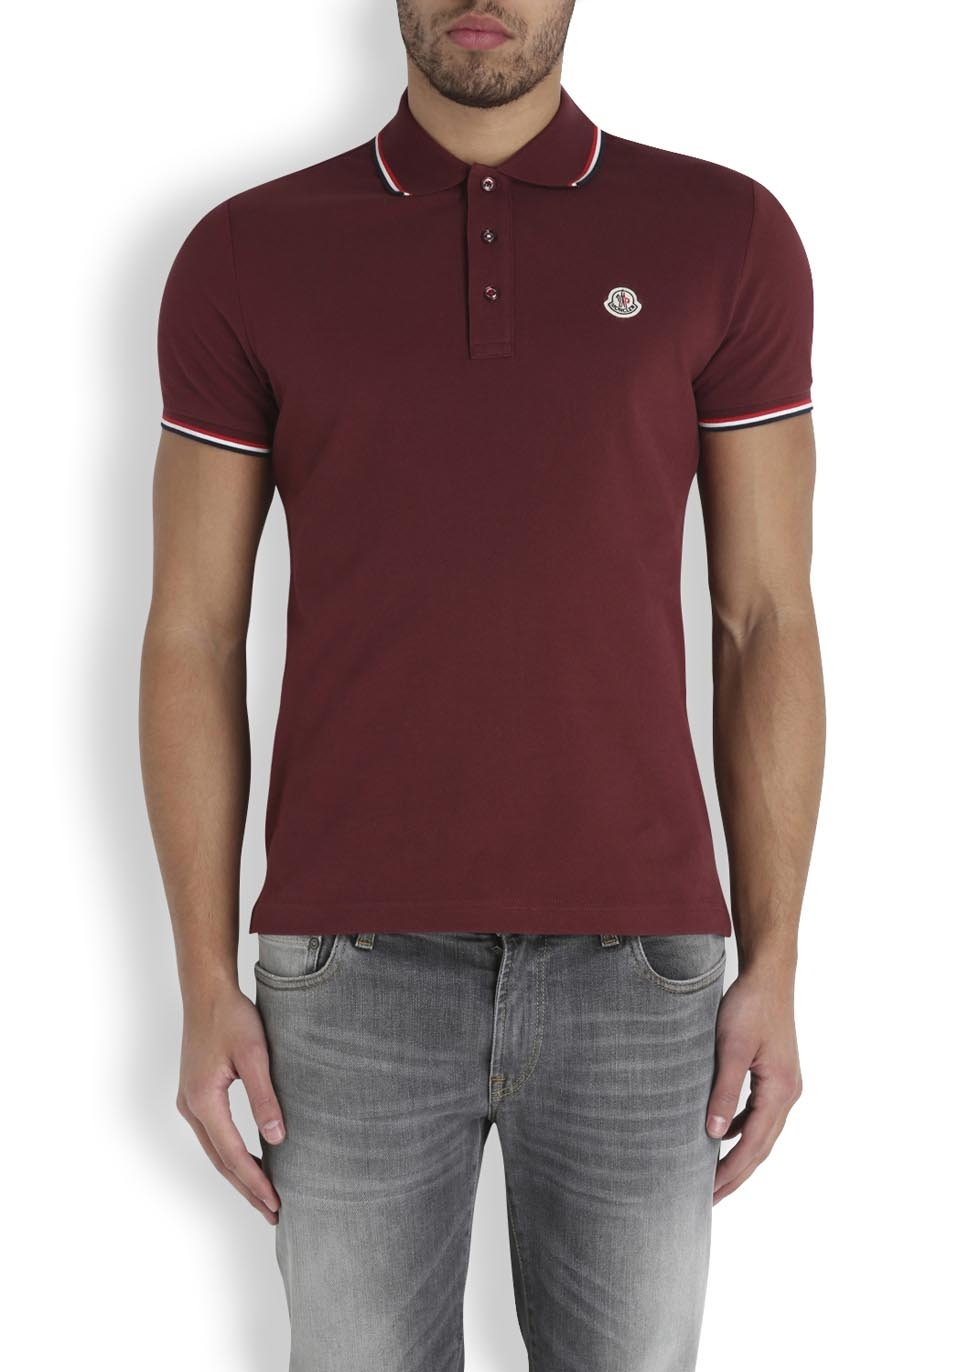 moncler polo shirt fake